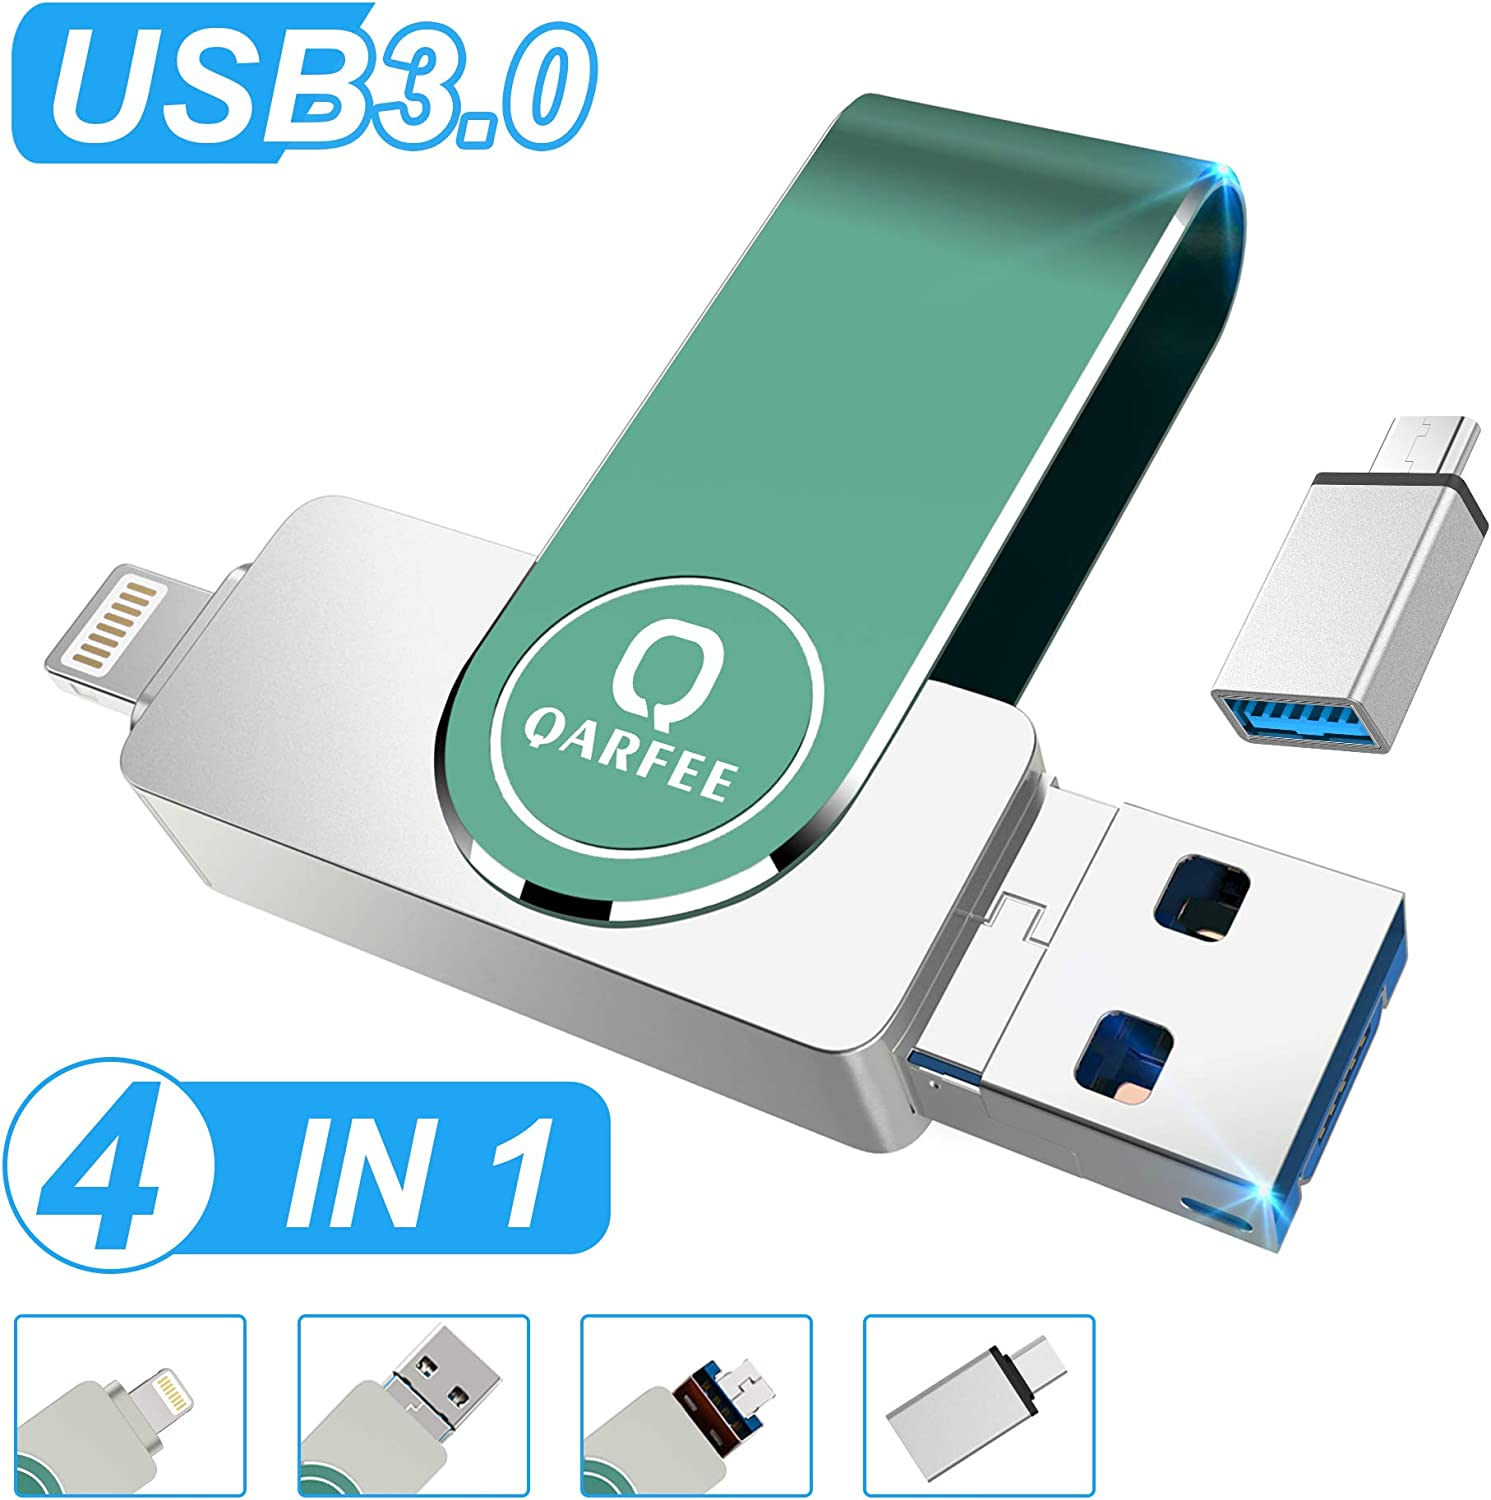 Flash Drive for iPhone Photo Stick 128GB for iPhone Thumb Drive USB 3.0 Compatible iPhone//iPad//Android Backup OTG Smart Phone Qarfee Silver External Storage Memory Stick Photostick Mobile